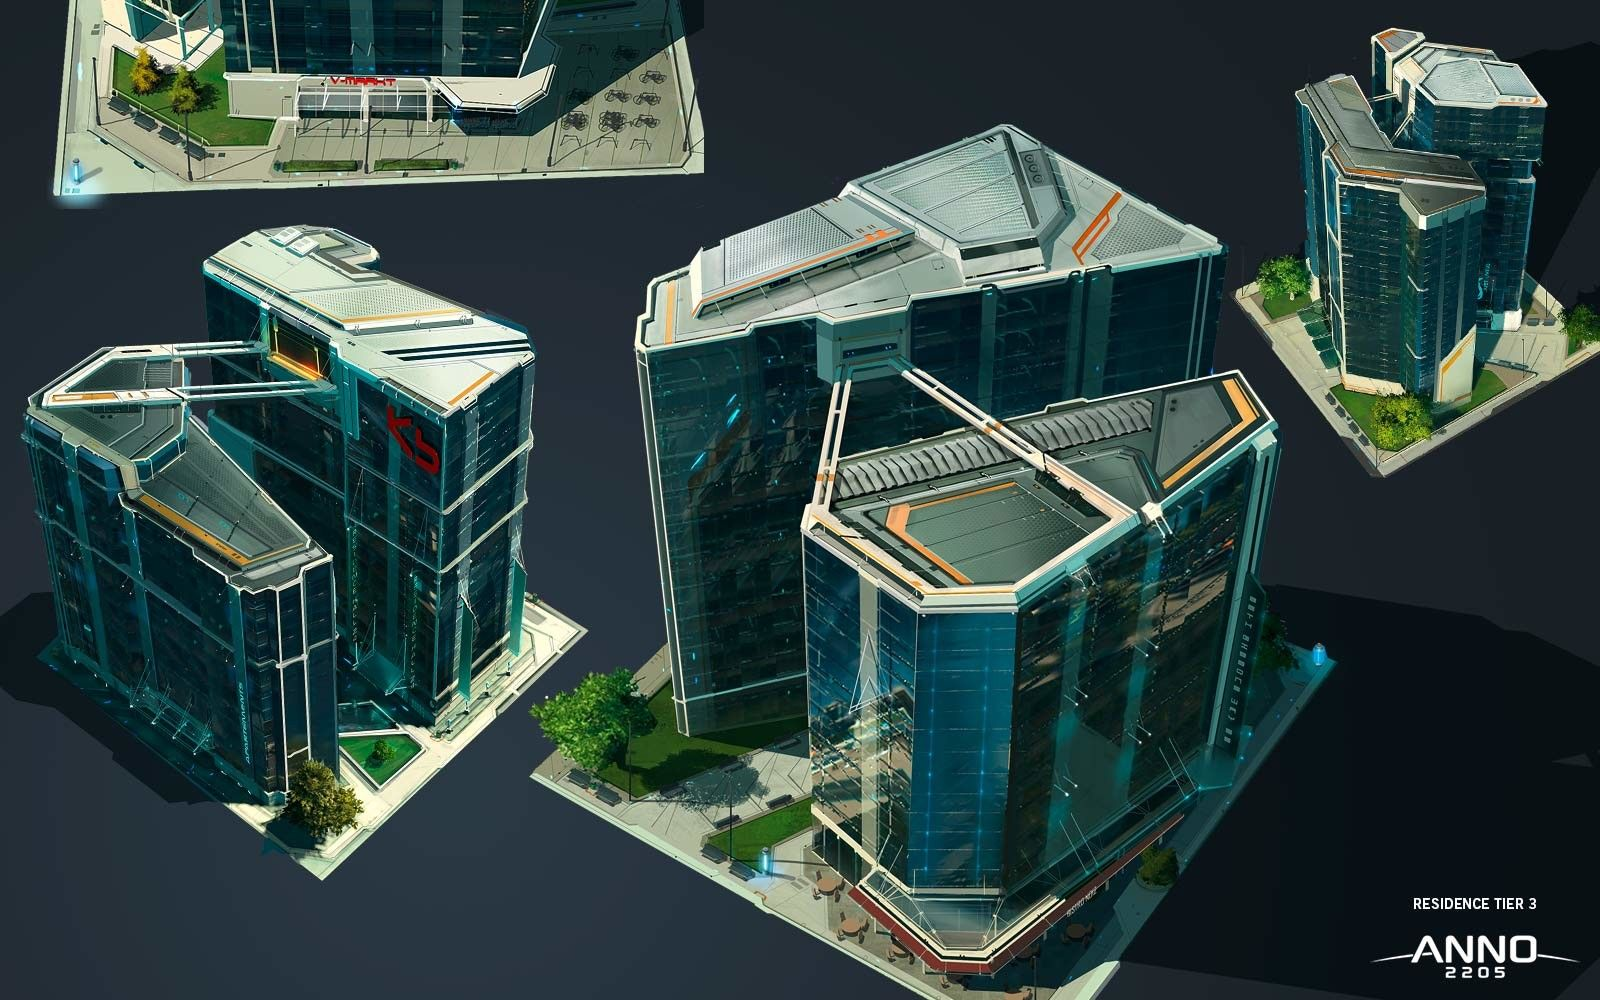 Anno 2205 residence building s ren meding on artstation for Concept building